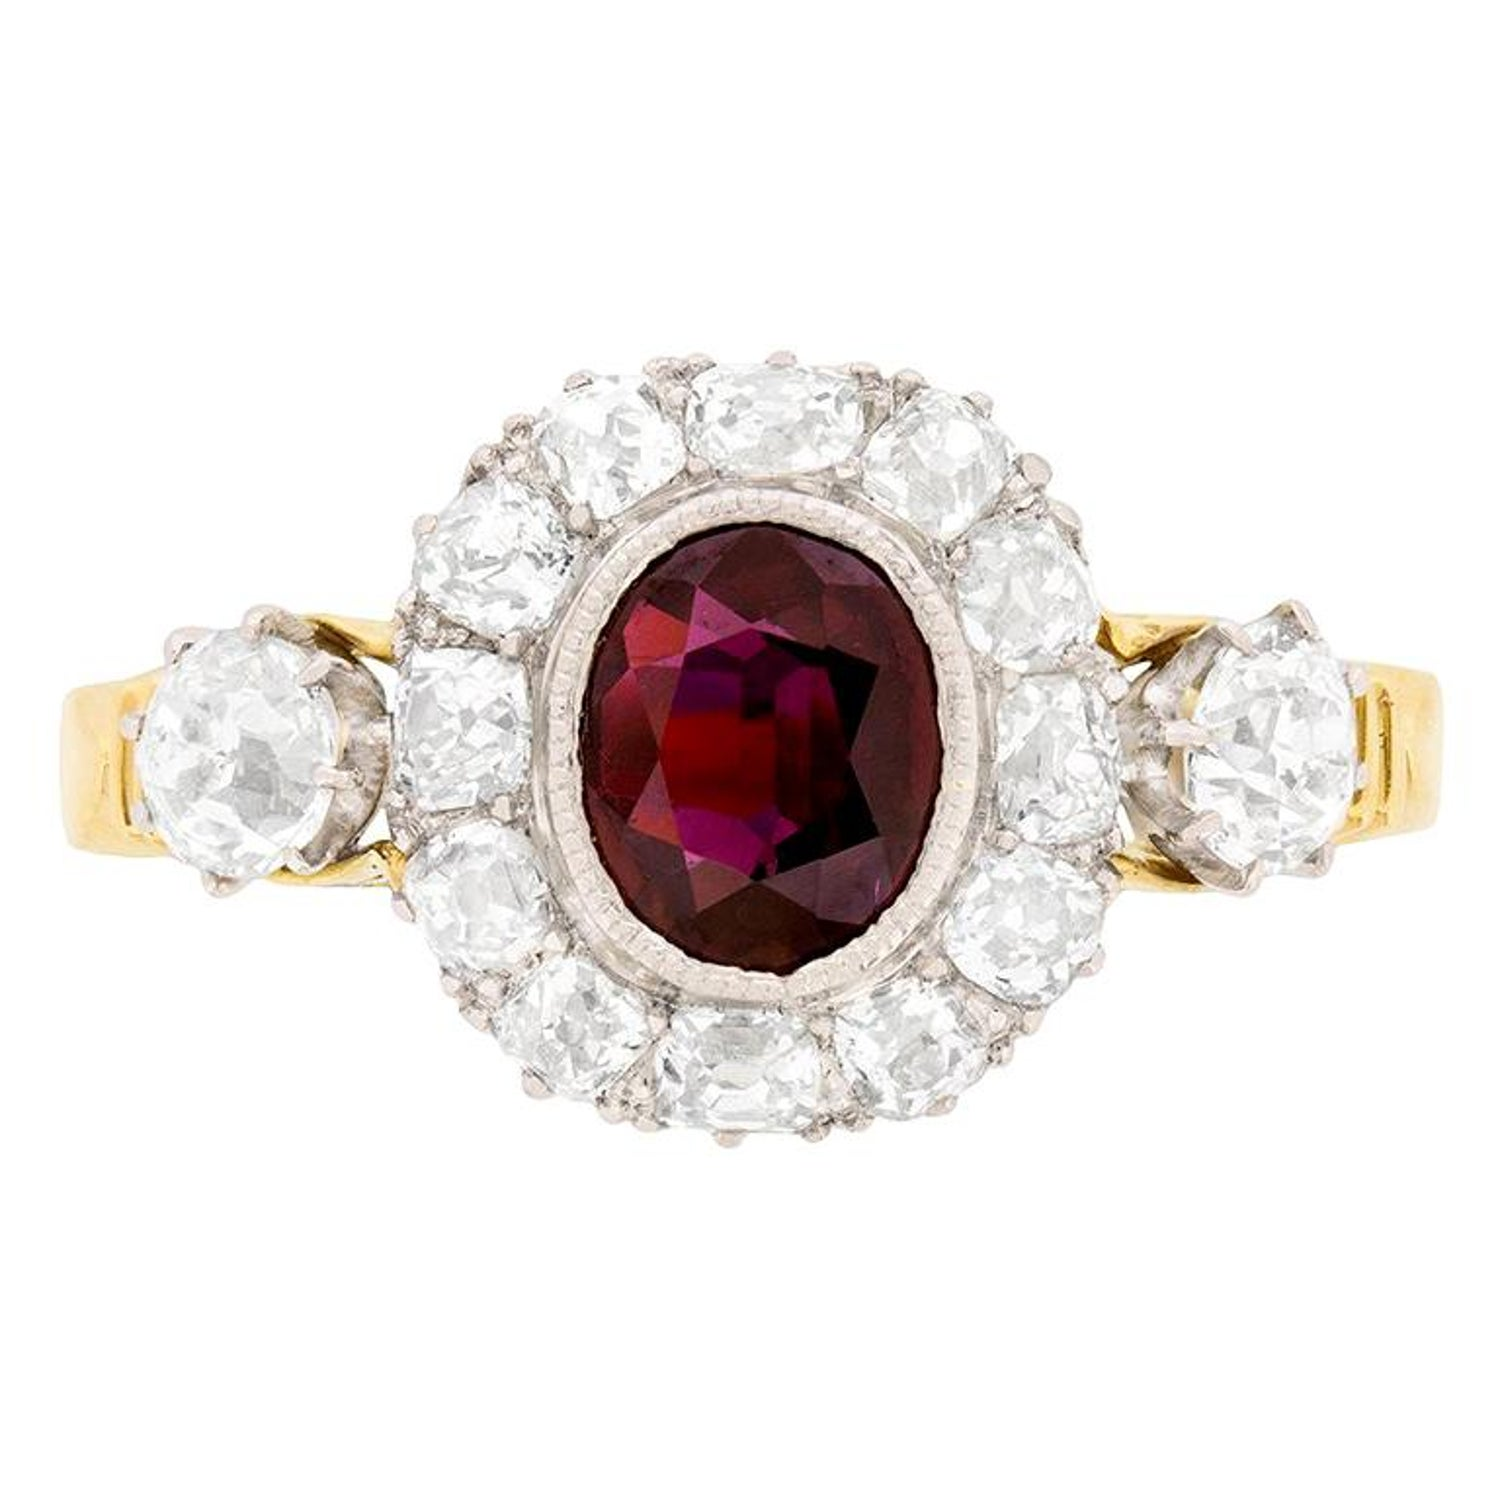 6be0a04e69cc7 Victorian Ruby and Diamond Cluster Ring, circa 1900s